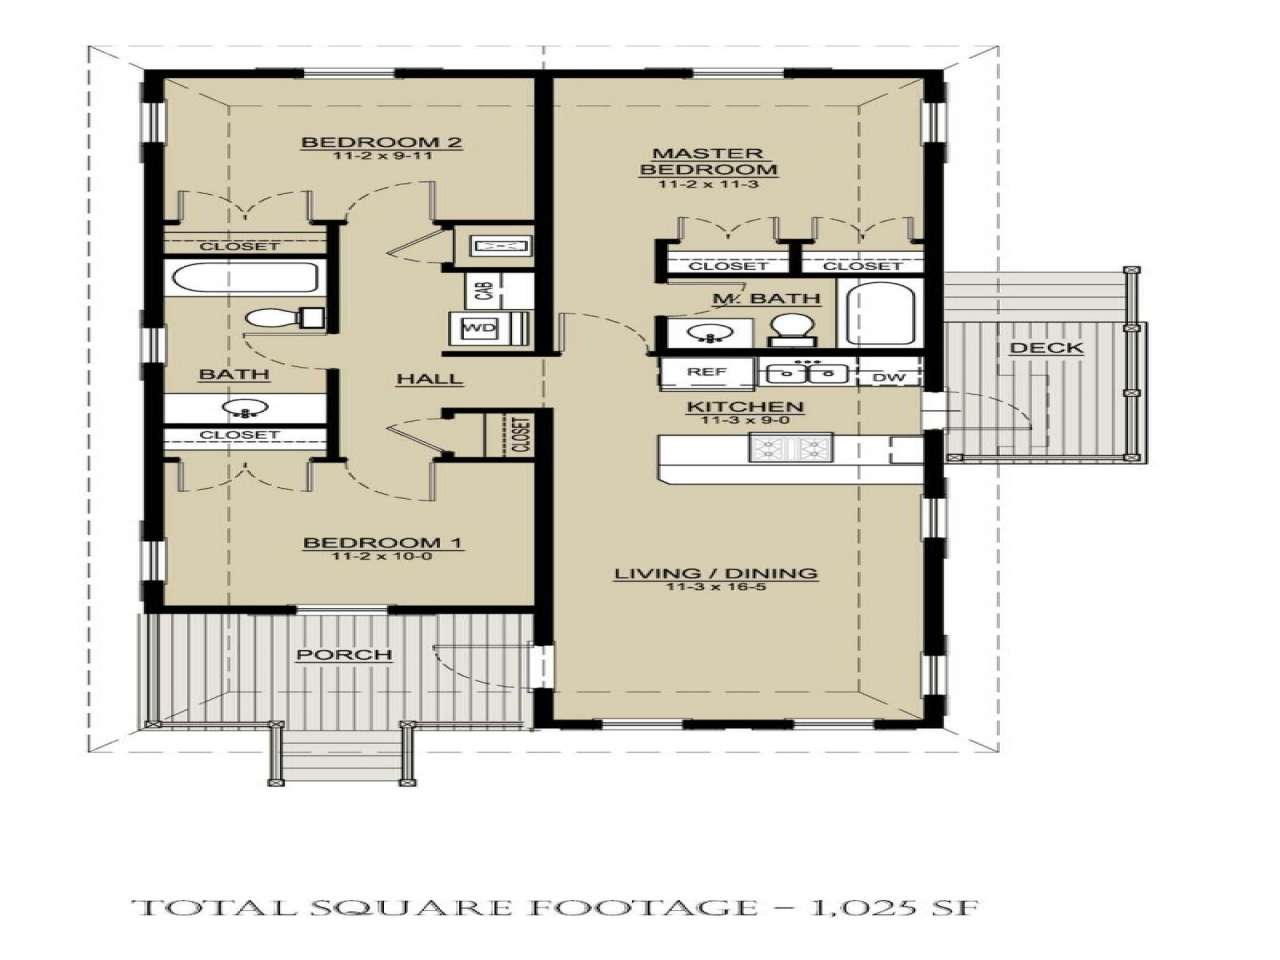 3 bedroom houses for rent 3 bedroom house floor plans for Rental property floor plans